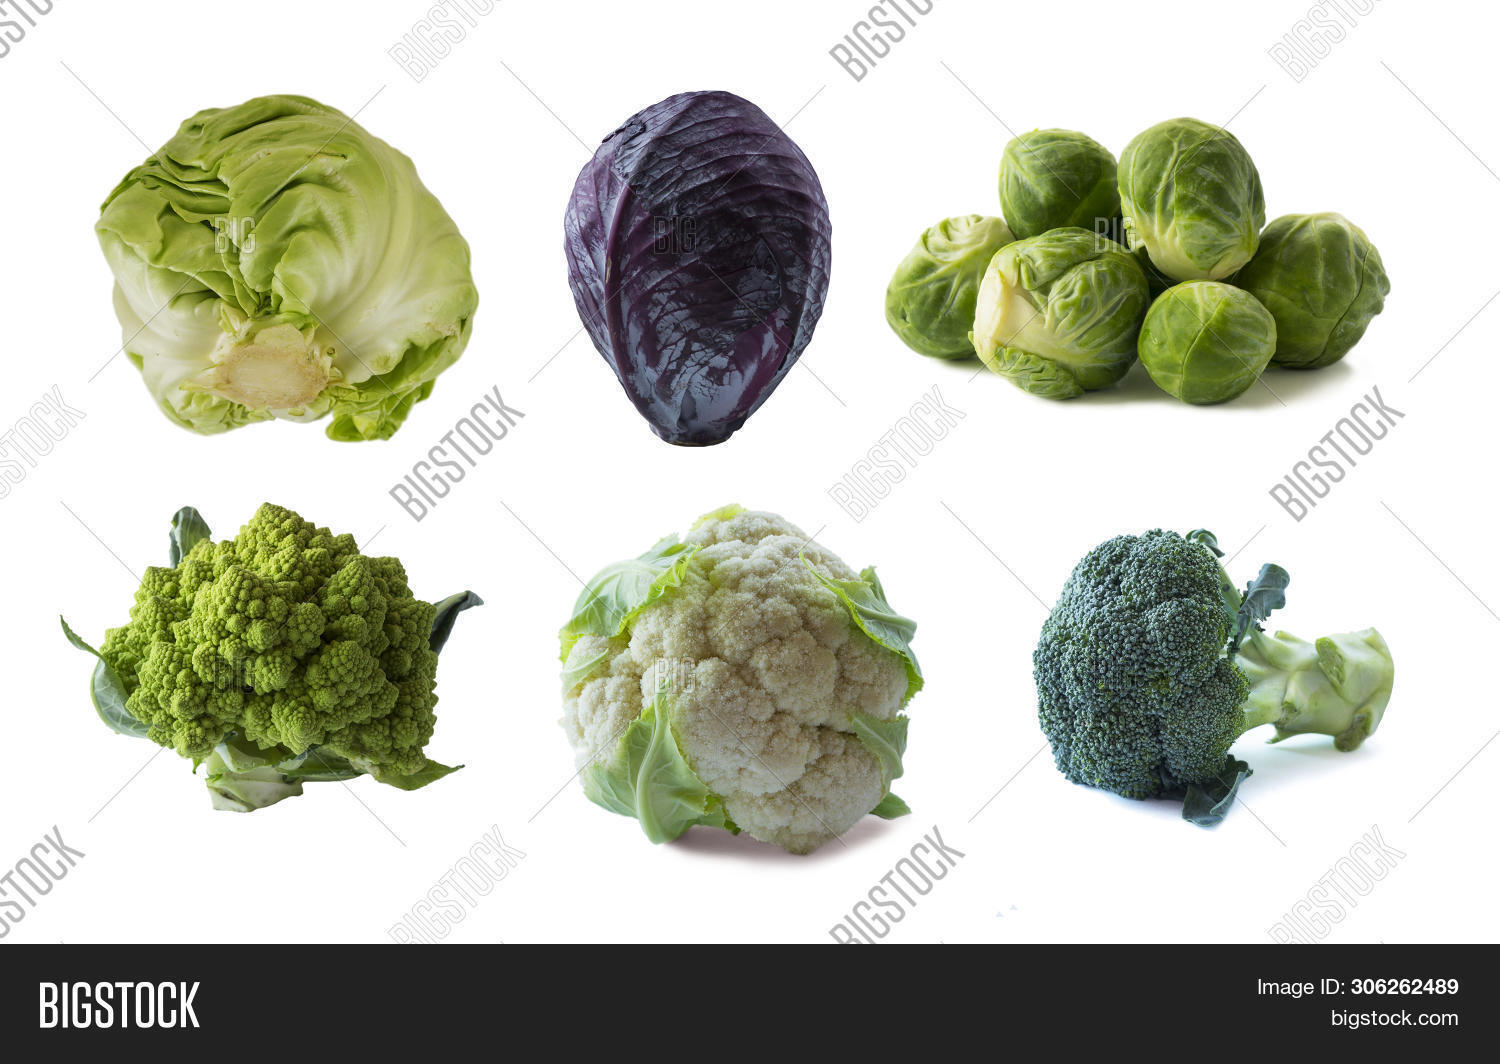 Romanesco,agriculture,antioxidants,assortment,background,banner,broccoli,brussels,bunch,cabbage,cauliflower,close,closeup,copy,cut,cutout,eating,food,fresh,freshness,green,healthy,ingredient,isolate,isolated,market,nobody,nutrition,nutritious,on,organic,out,packaging,packed,placard,plant,raw,space,sprout,studio,top,up,variety,vegetable,vegetarian,view,vitamin,white